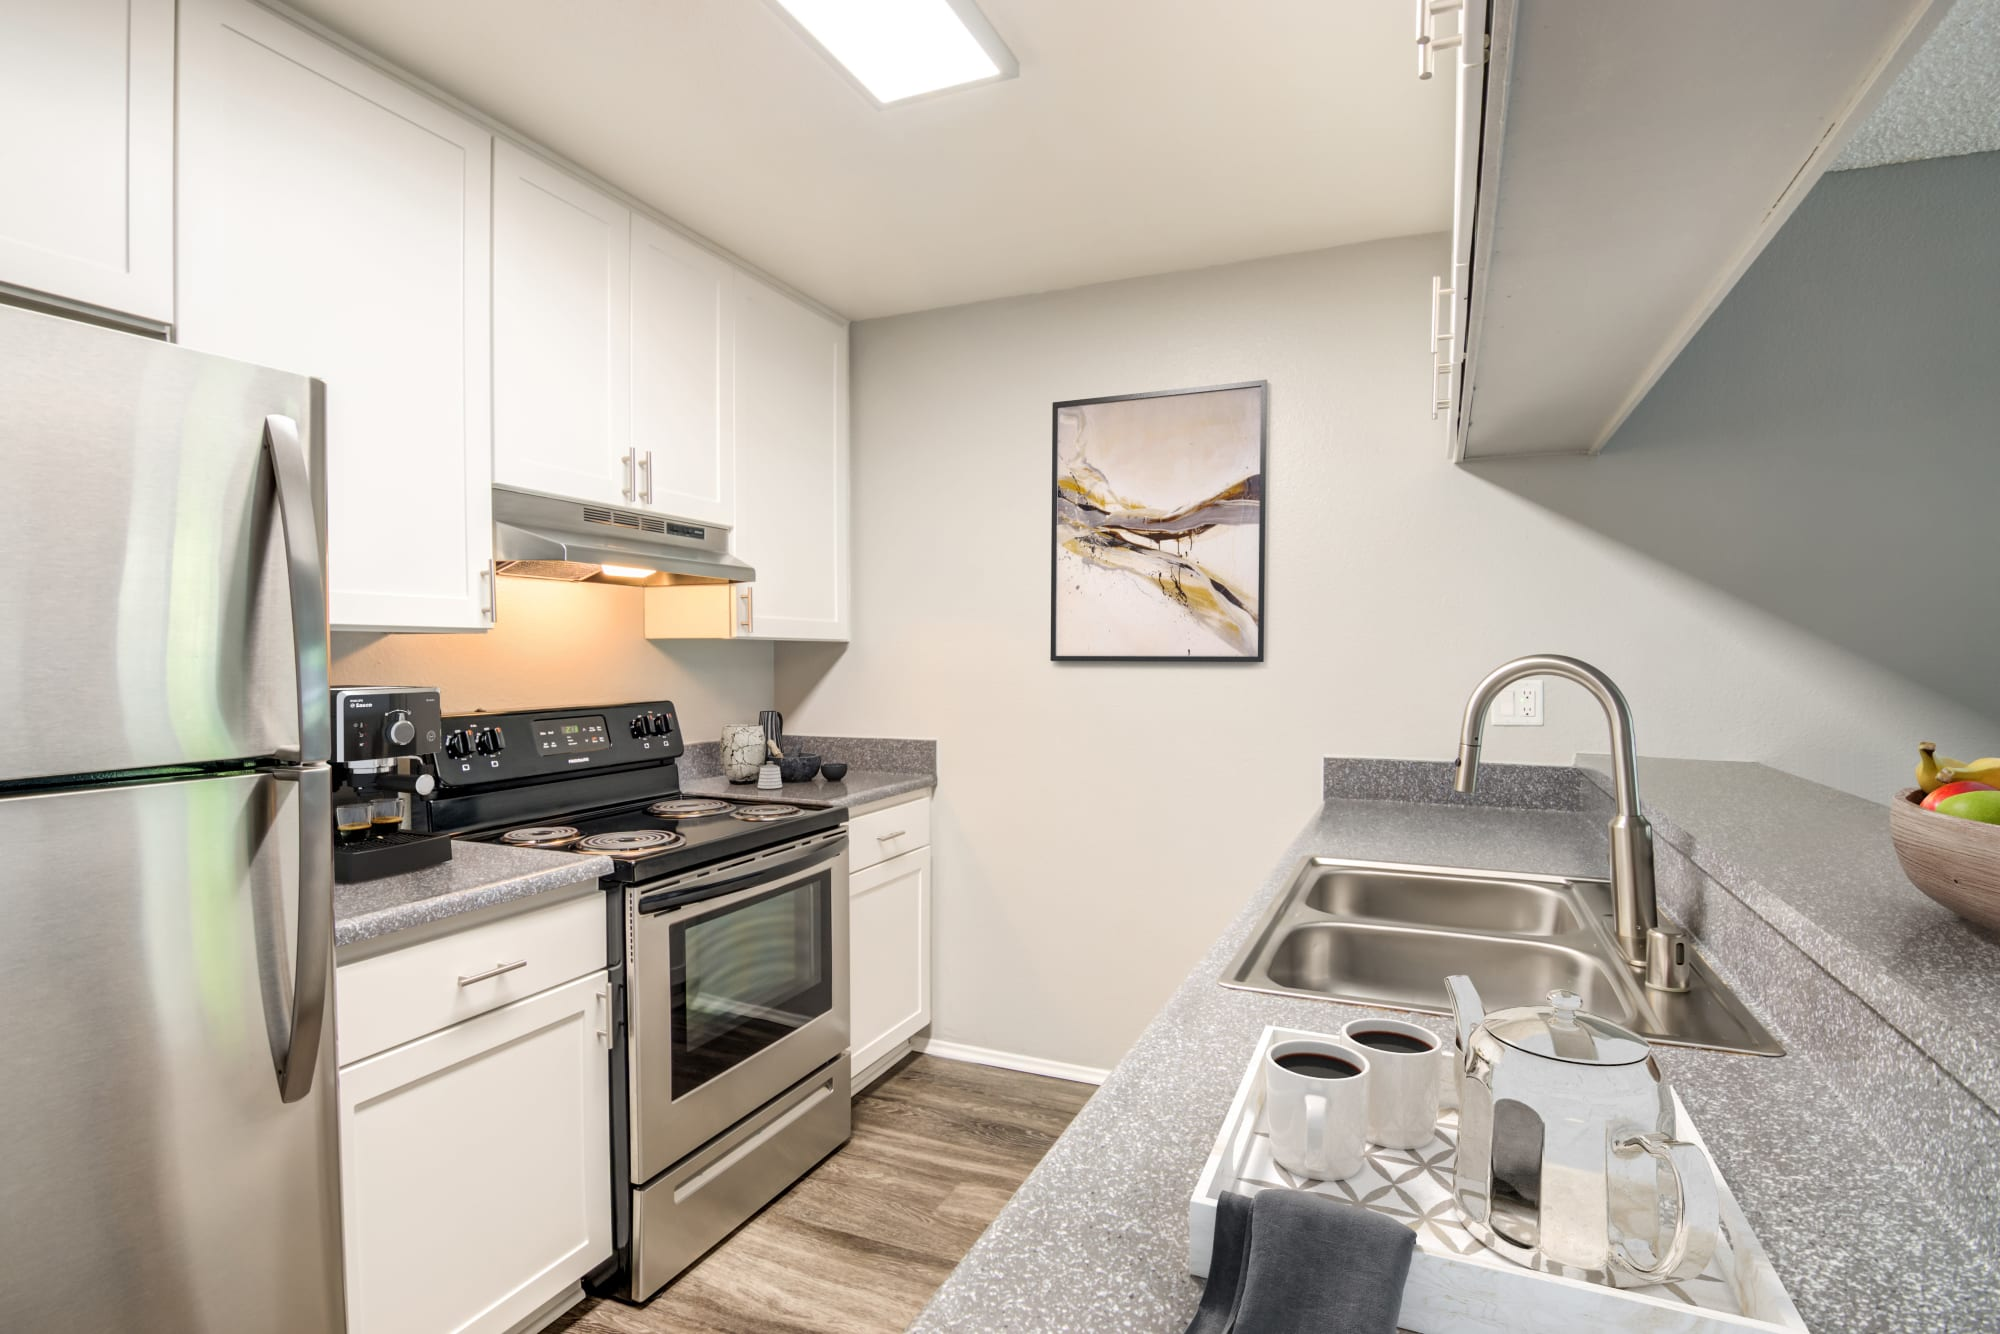 A renovated kitchen with white cabinets at Hillside Terrace Apartments in Lemon Grove, California